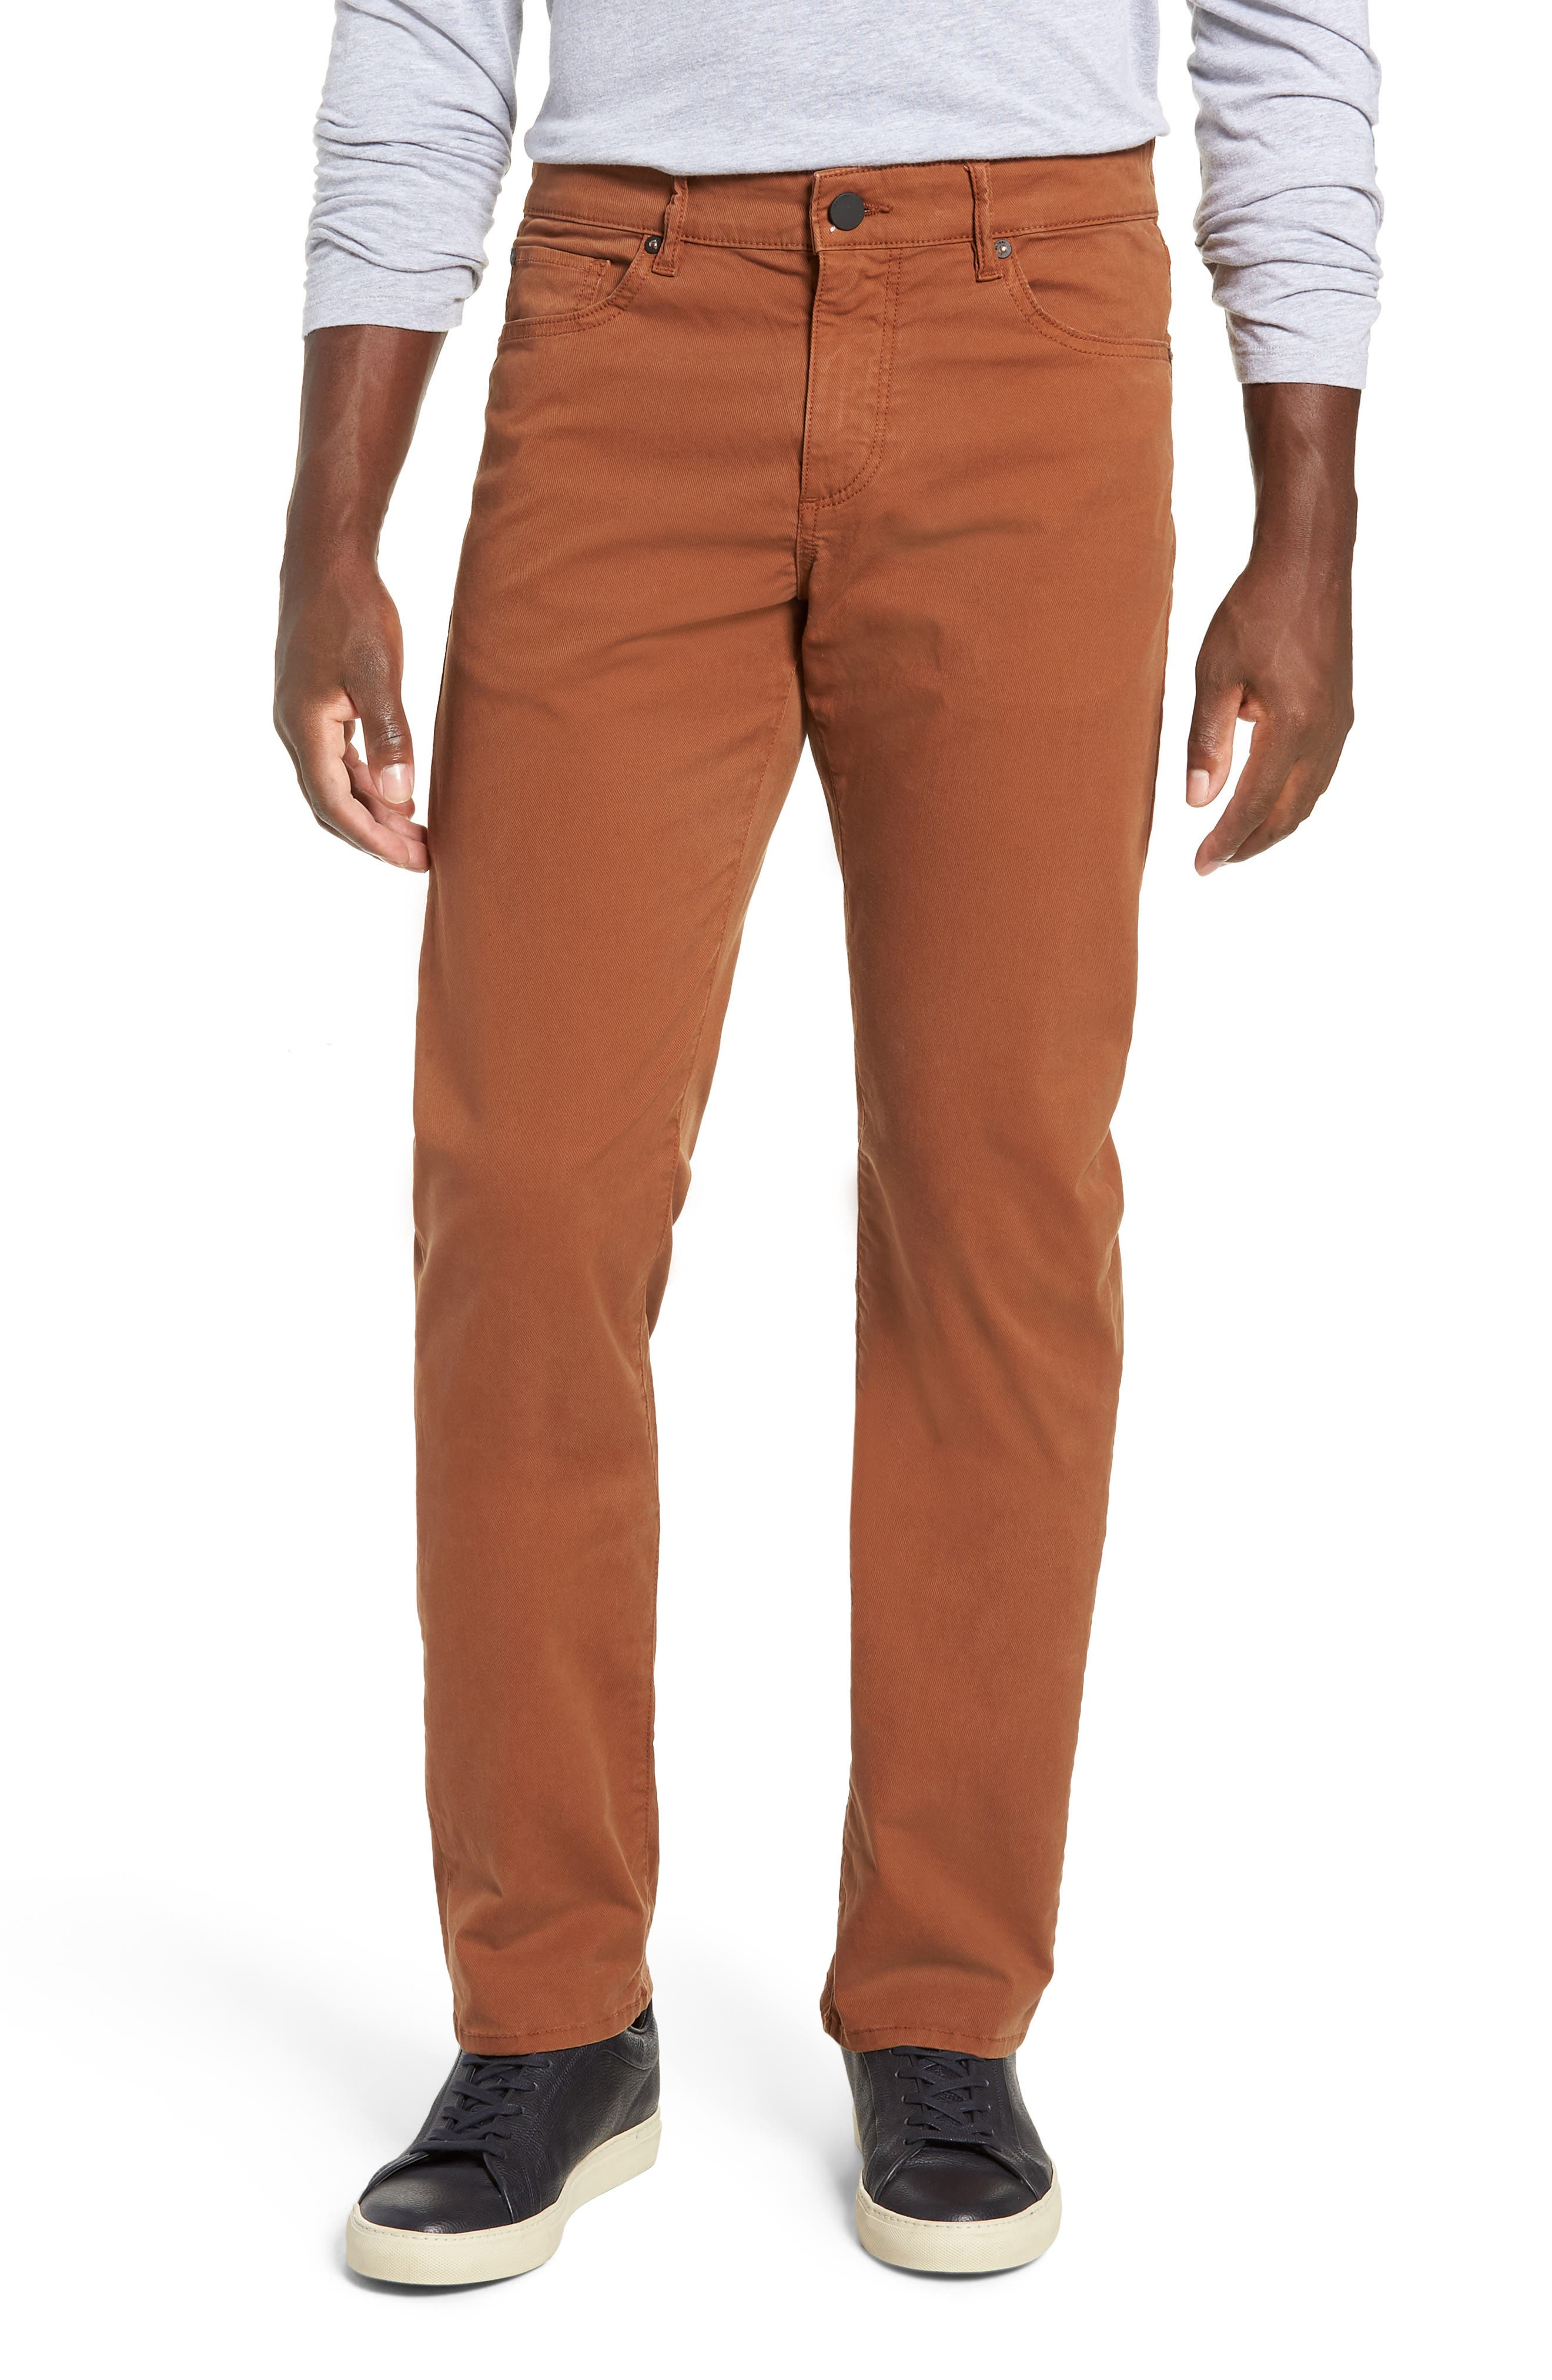 Russell Slim Straight Leg Jeans,                             Main thumbnail 1, color,                             TERRACOTTA